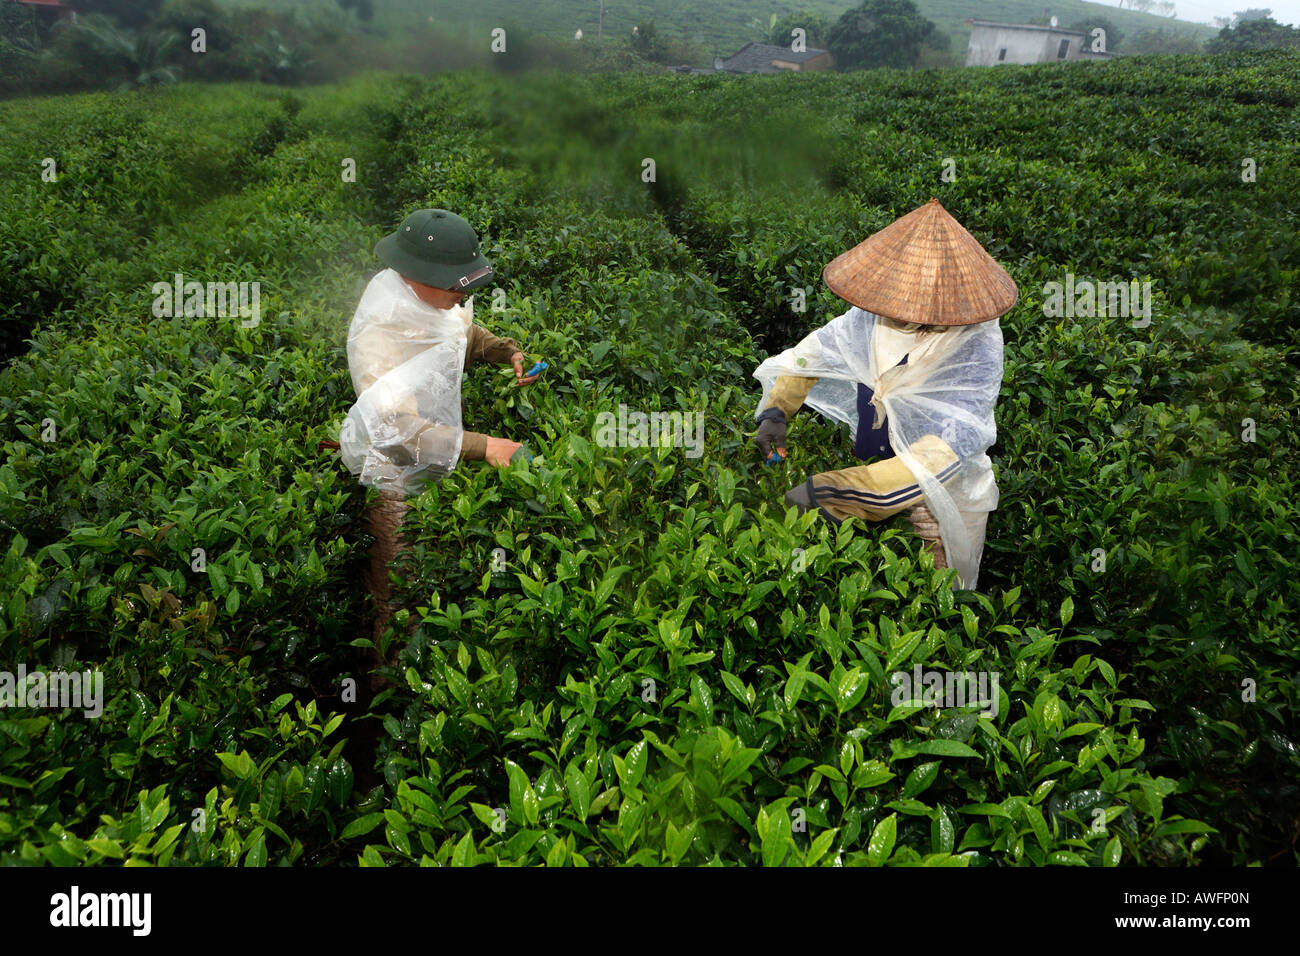 Tea pickers on a state-owned tea plantation, Tieu Khu 69, Son La Province, Vietnam, Asia Stock Photo